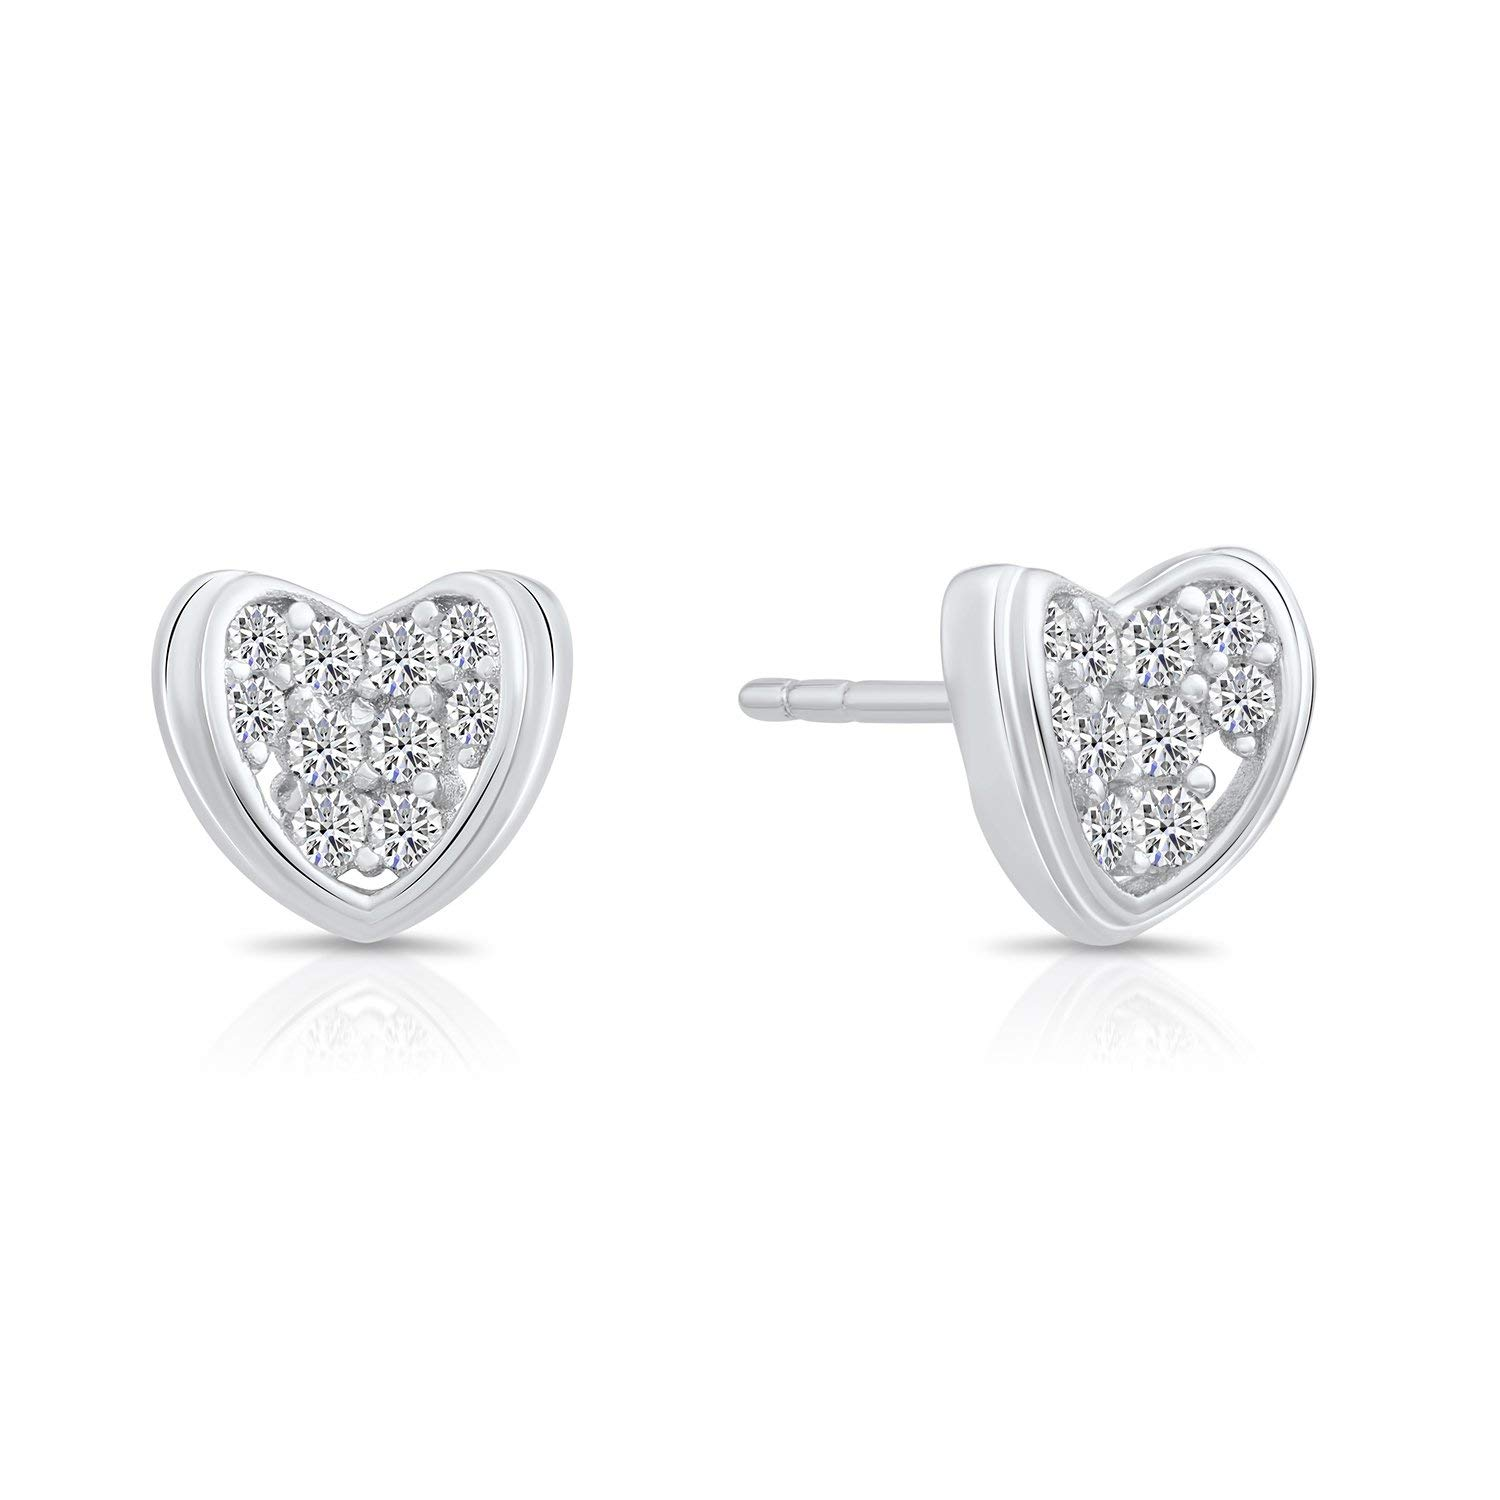 Get Quotations Tiny Sterling Silver Heart Shaped Stud Earrings With Cubic Zirconia